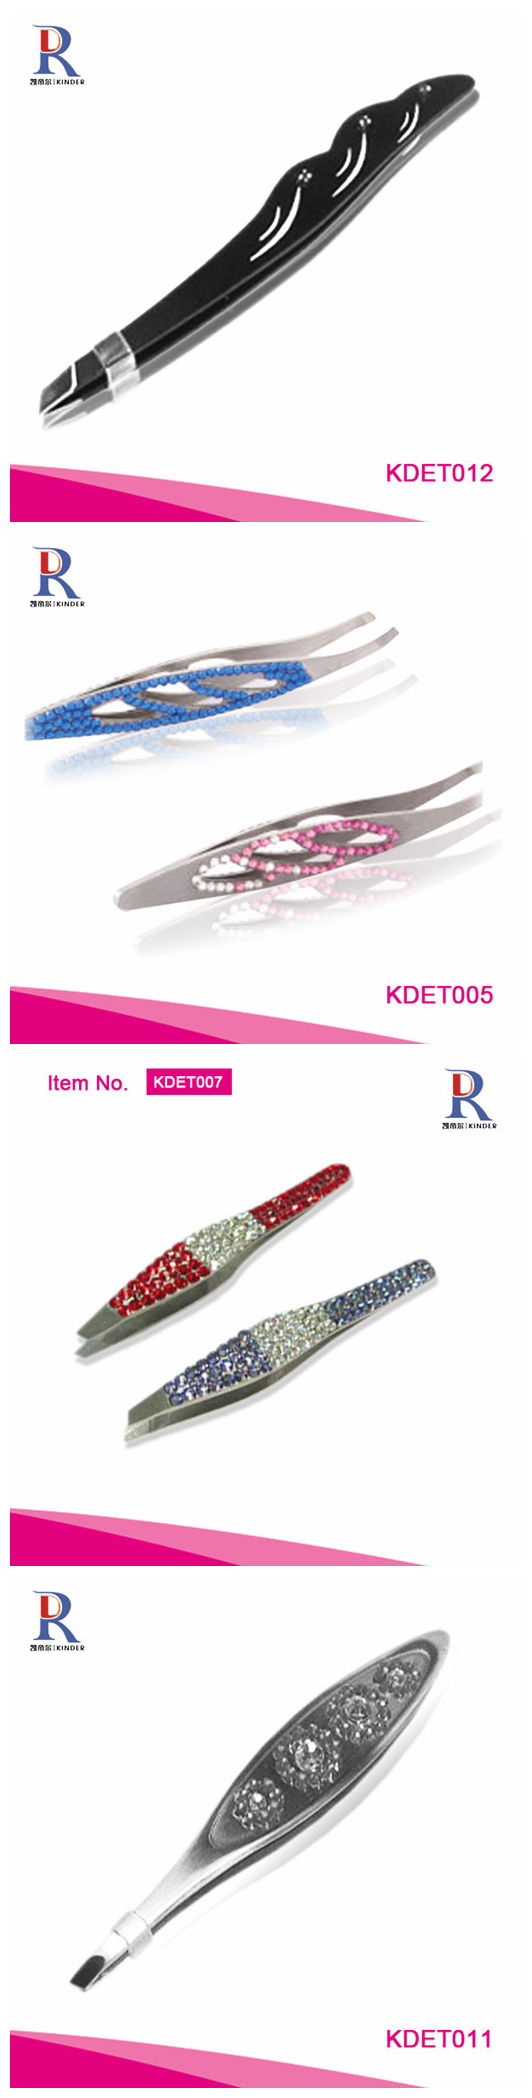 Rhinestone crystal eyebrow tweezers for ladies